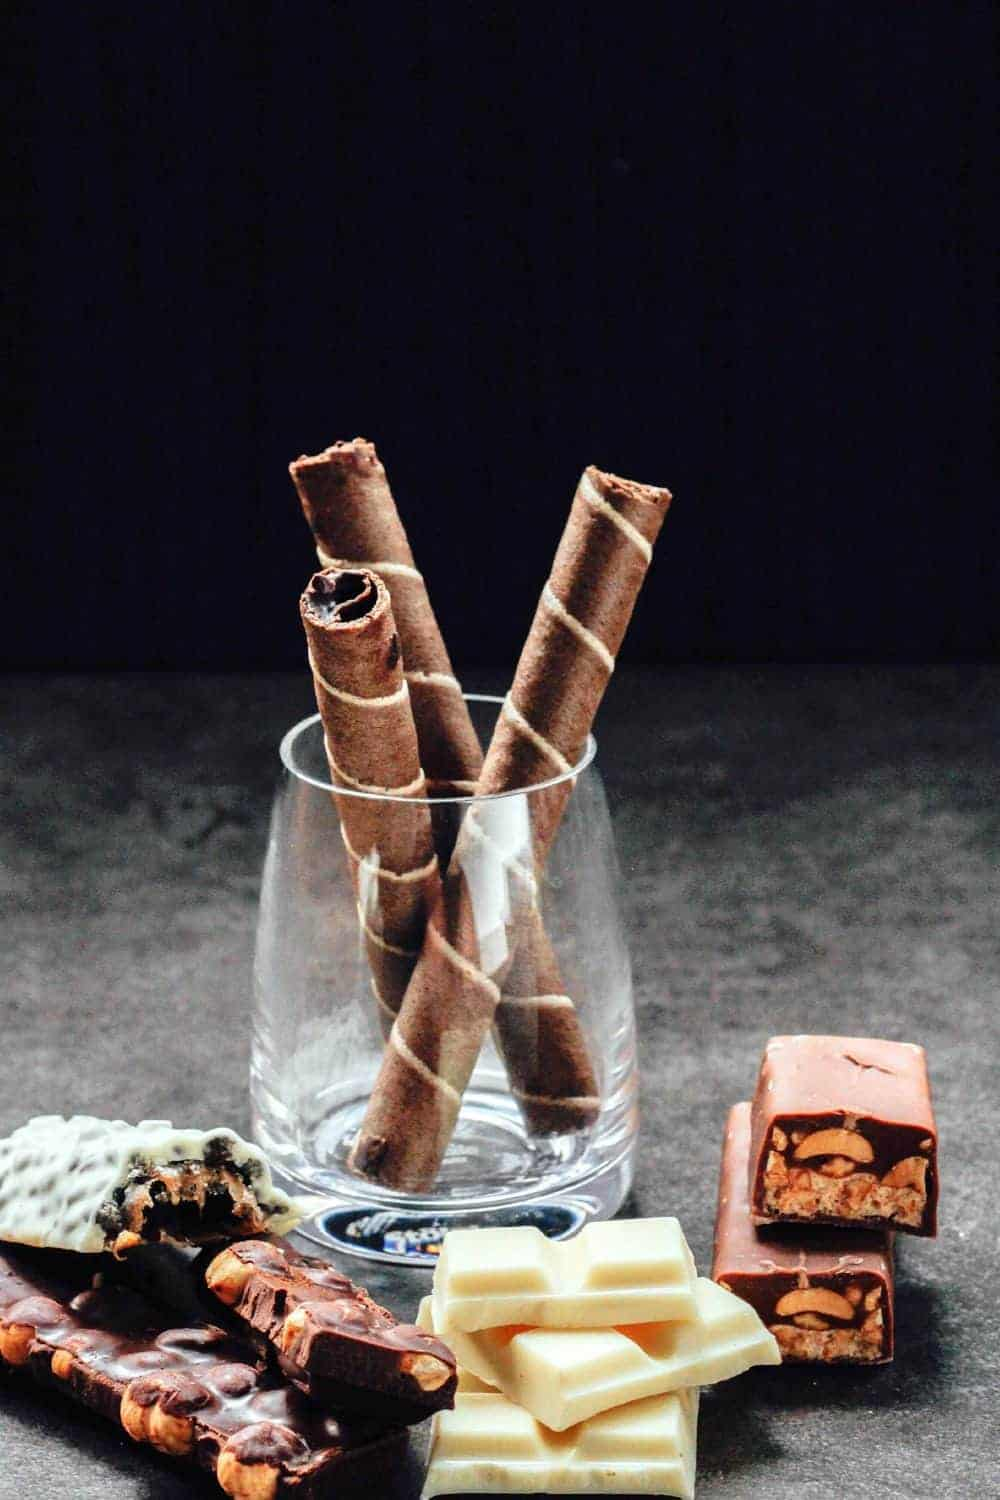 Cinnamon in a jar and pieces of back and white chocolate